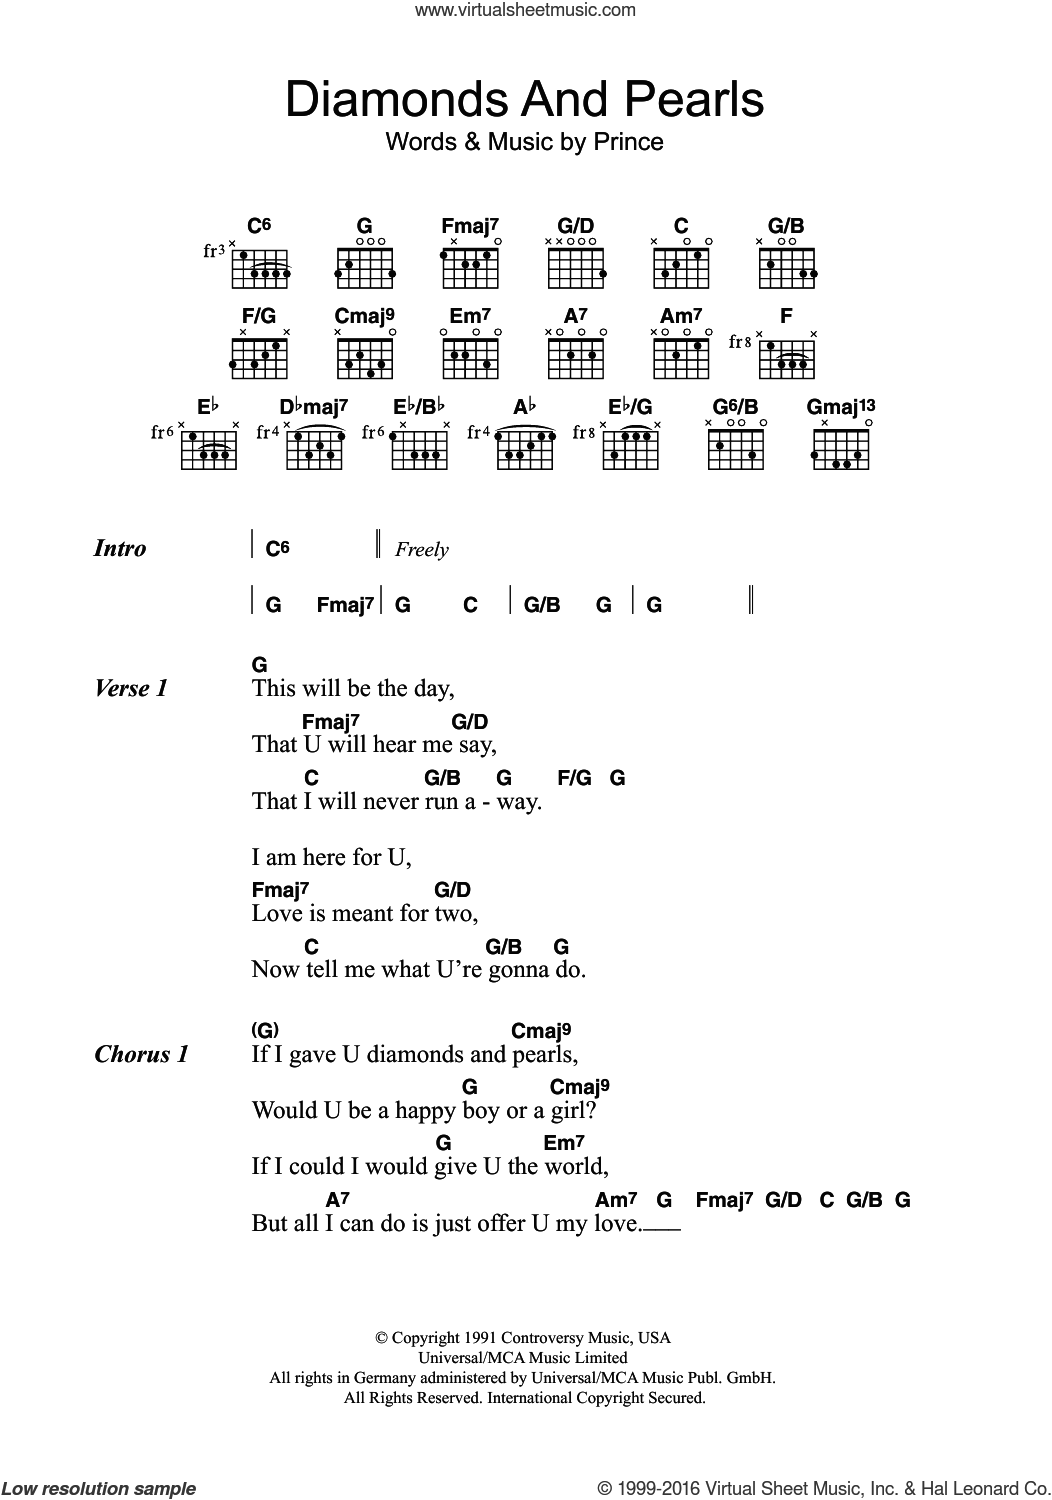 Diamonds And Pearls sheet music for guitar (chords) by Prince